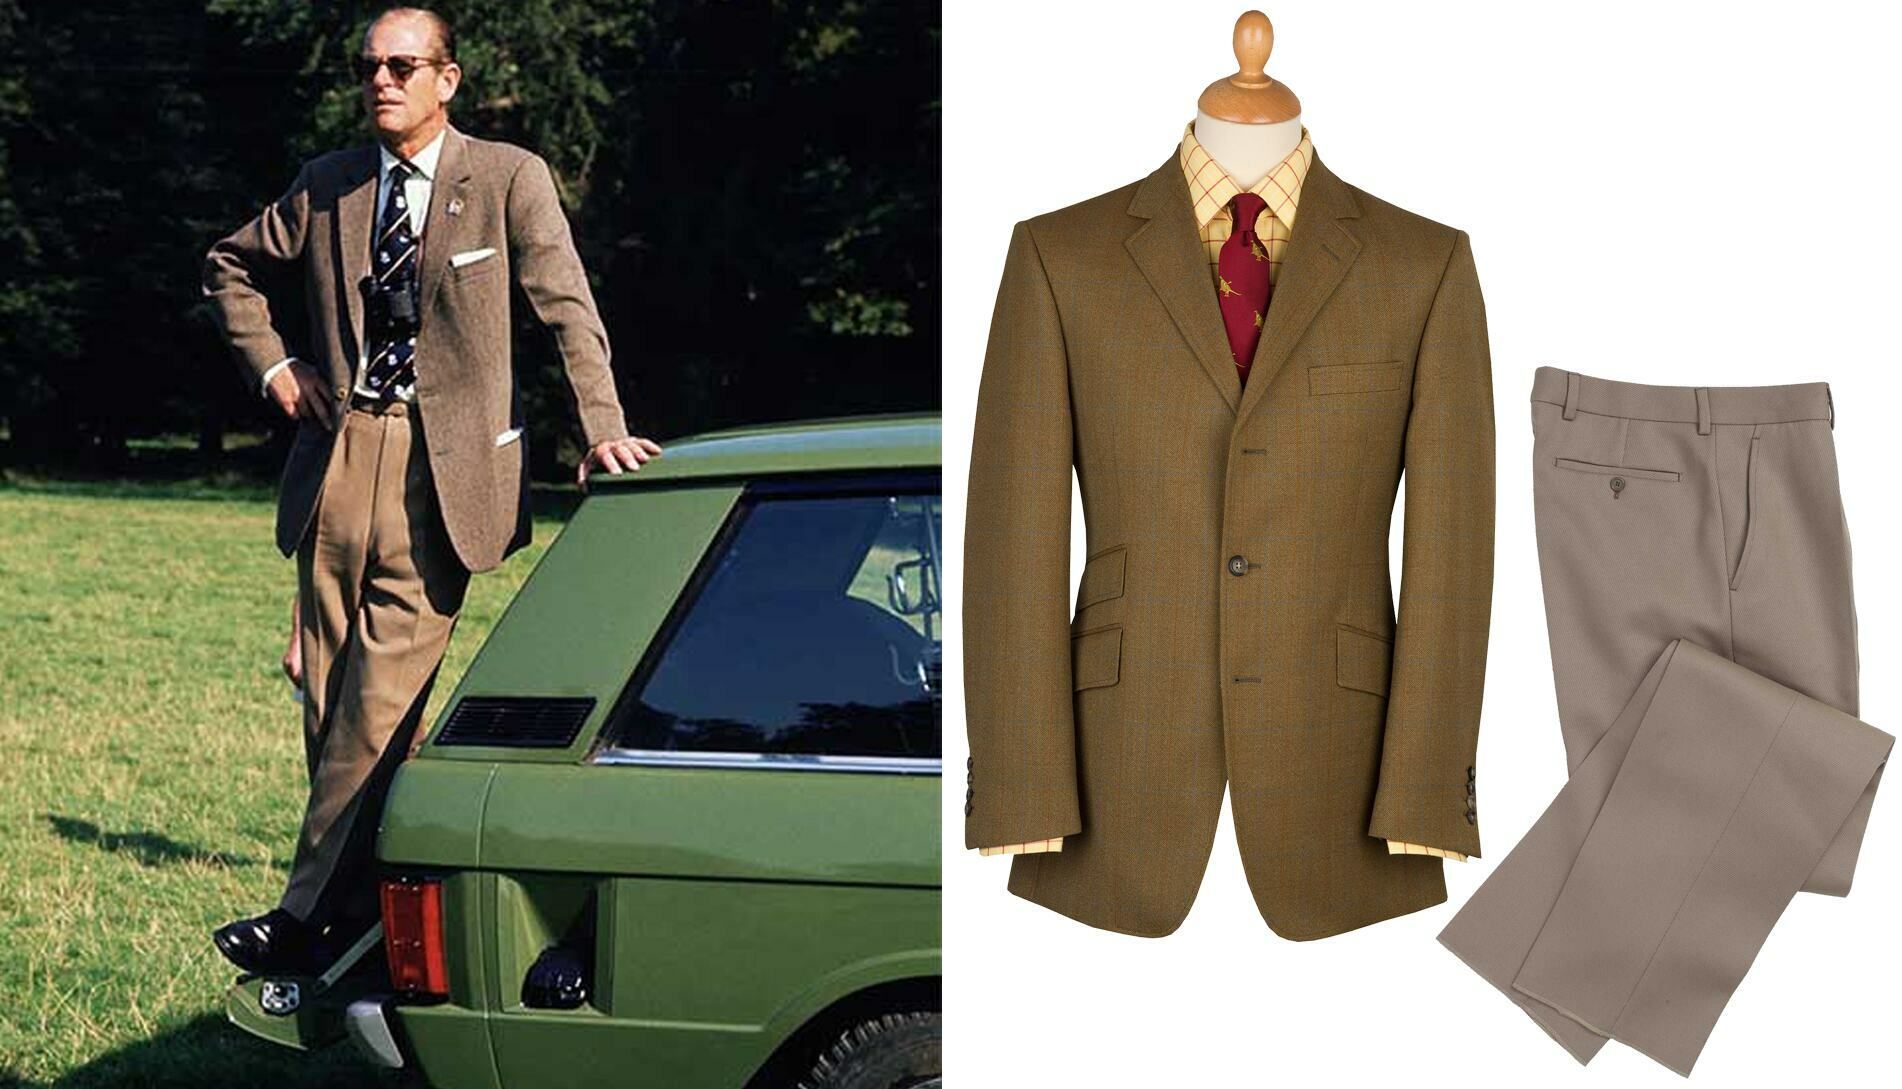 Prince Philip. Close matching the colour tones of this tweed jacket and trousers ensemble deftly brings a sleek, co-ordinated note to casual country style.